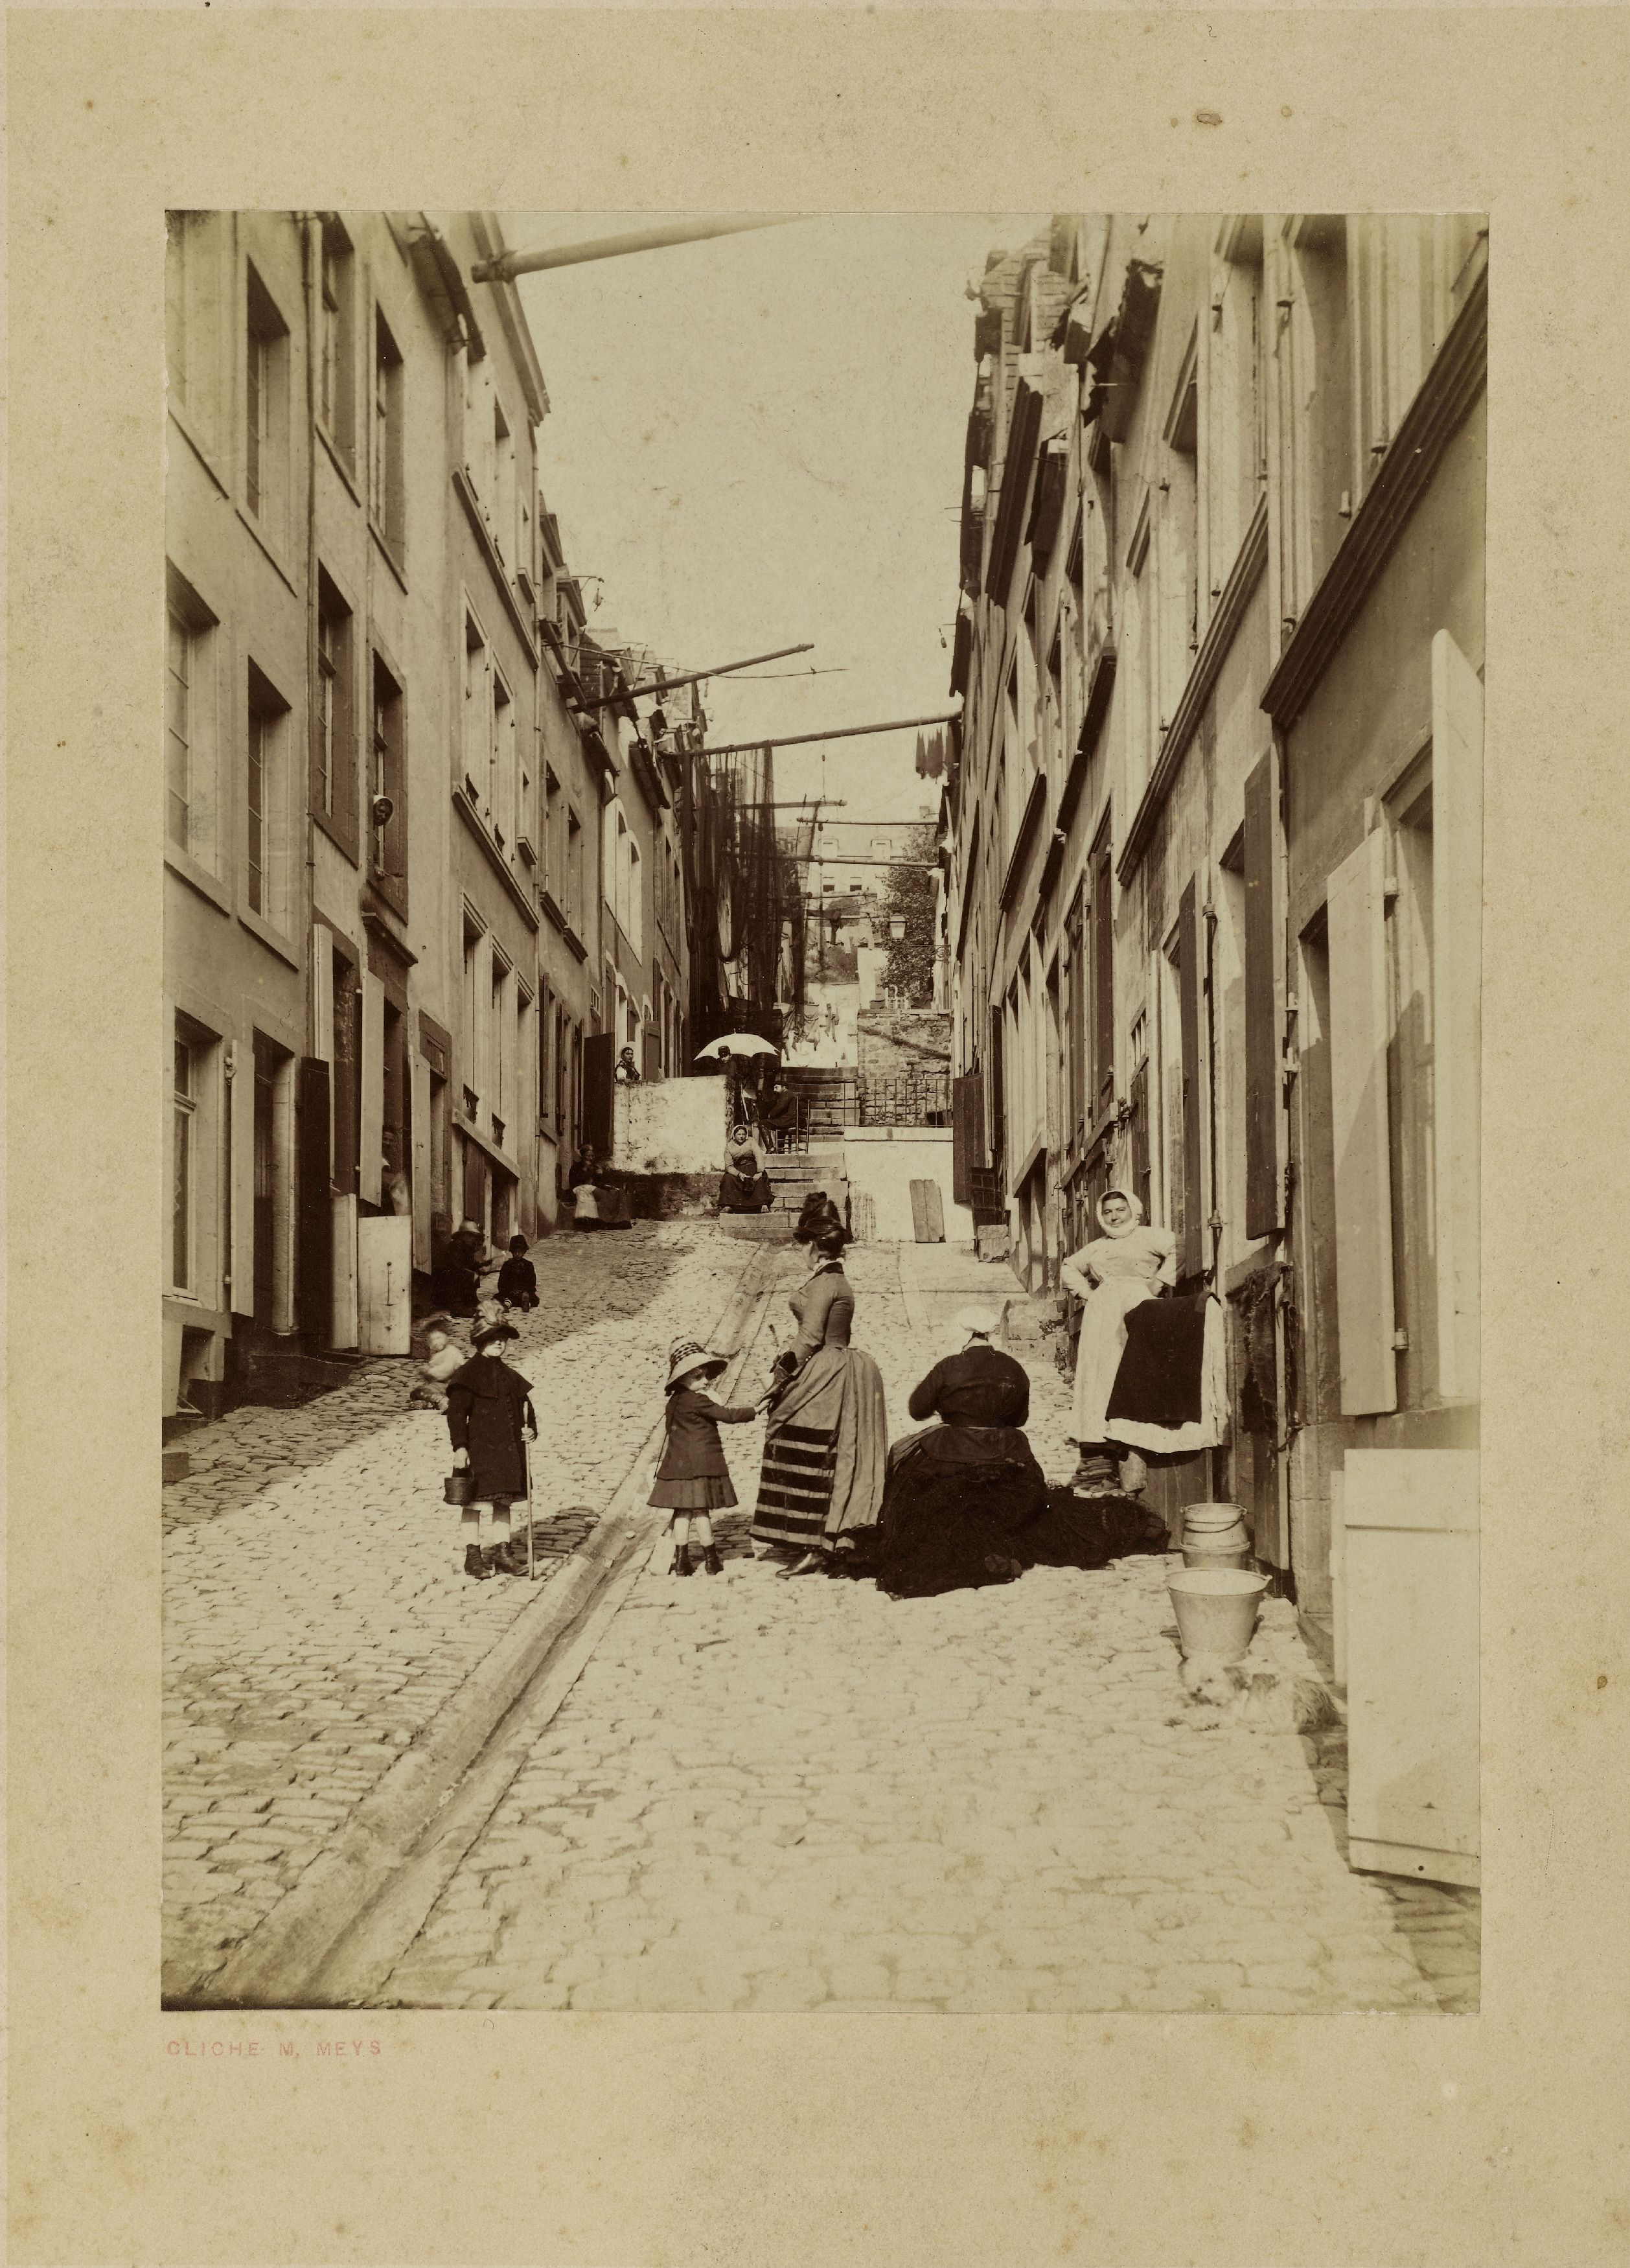 The painter Louis-Robert Carrier-Belleuse (?) painting in the open air – street